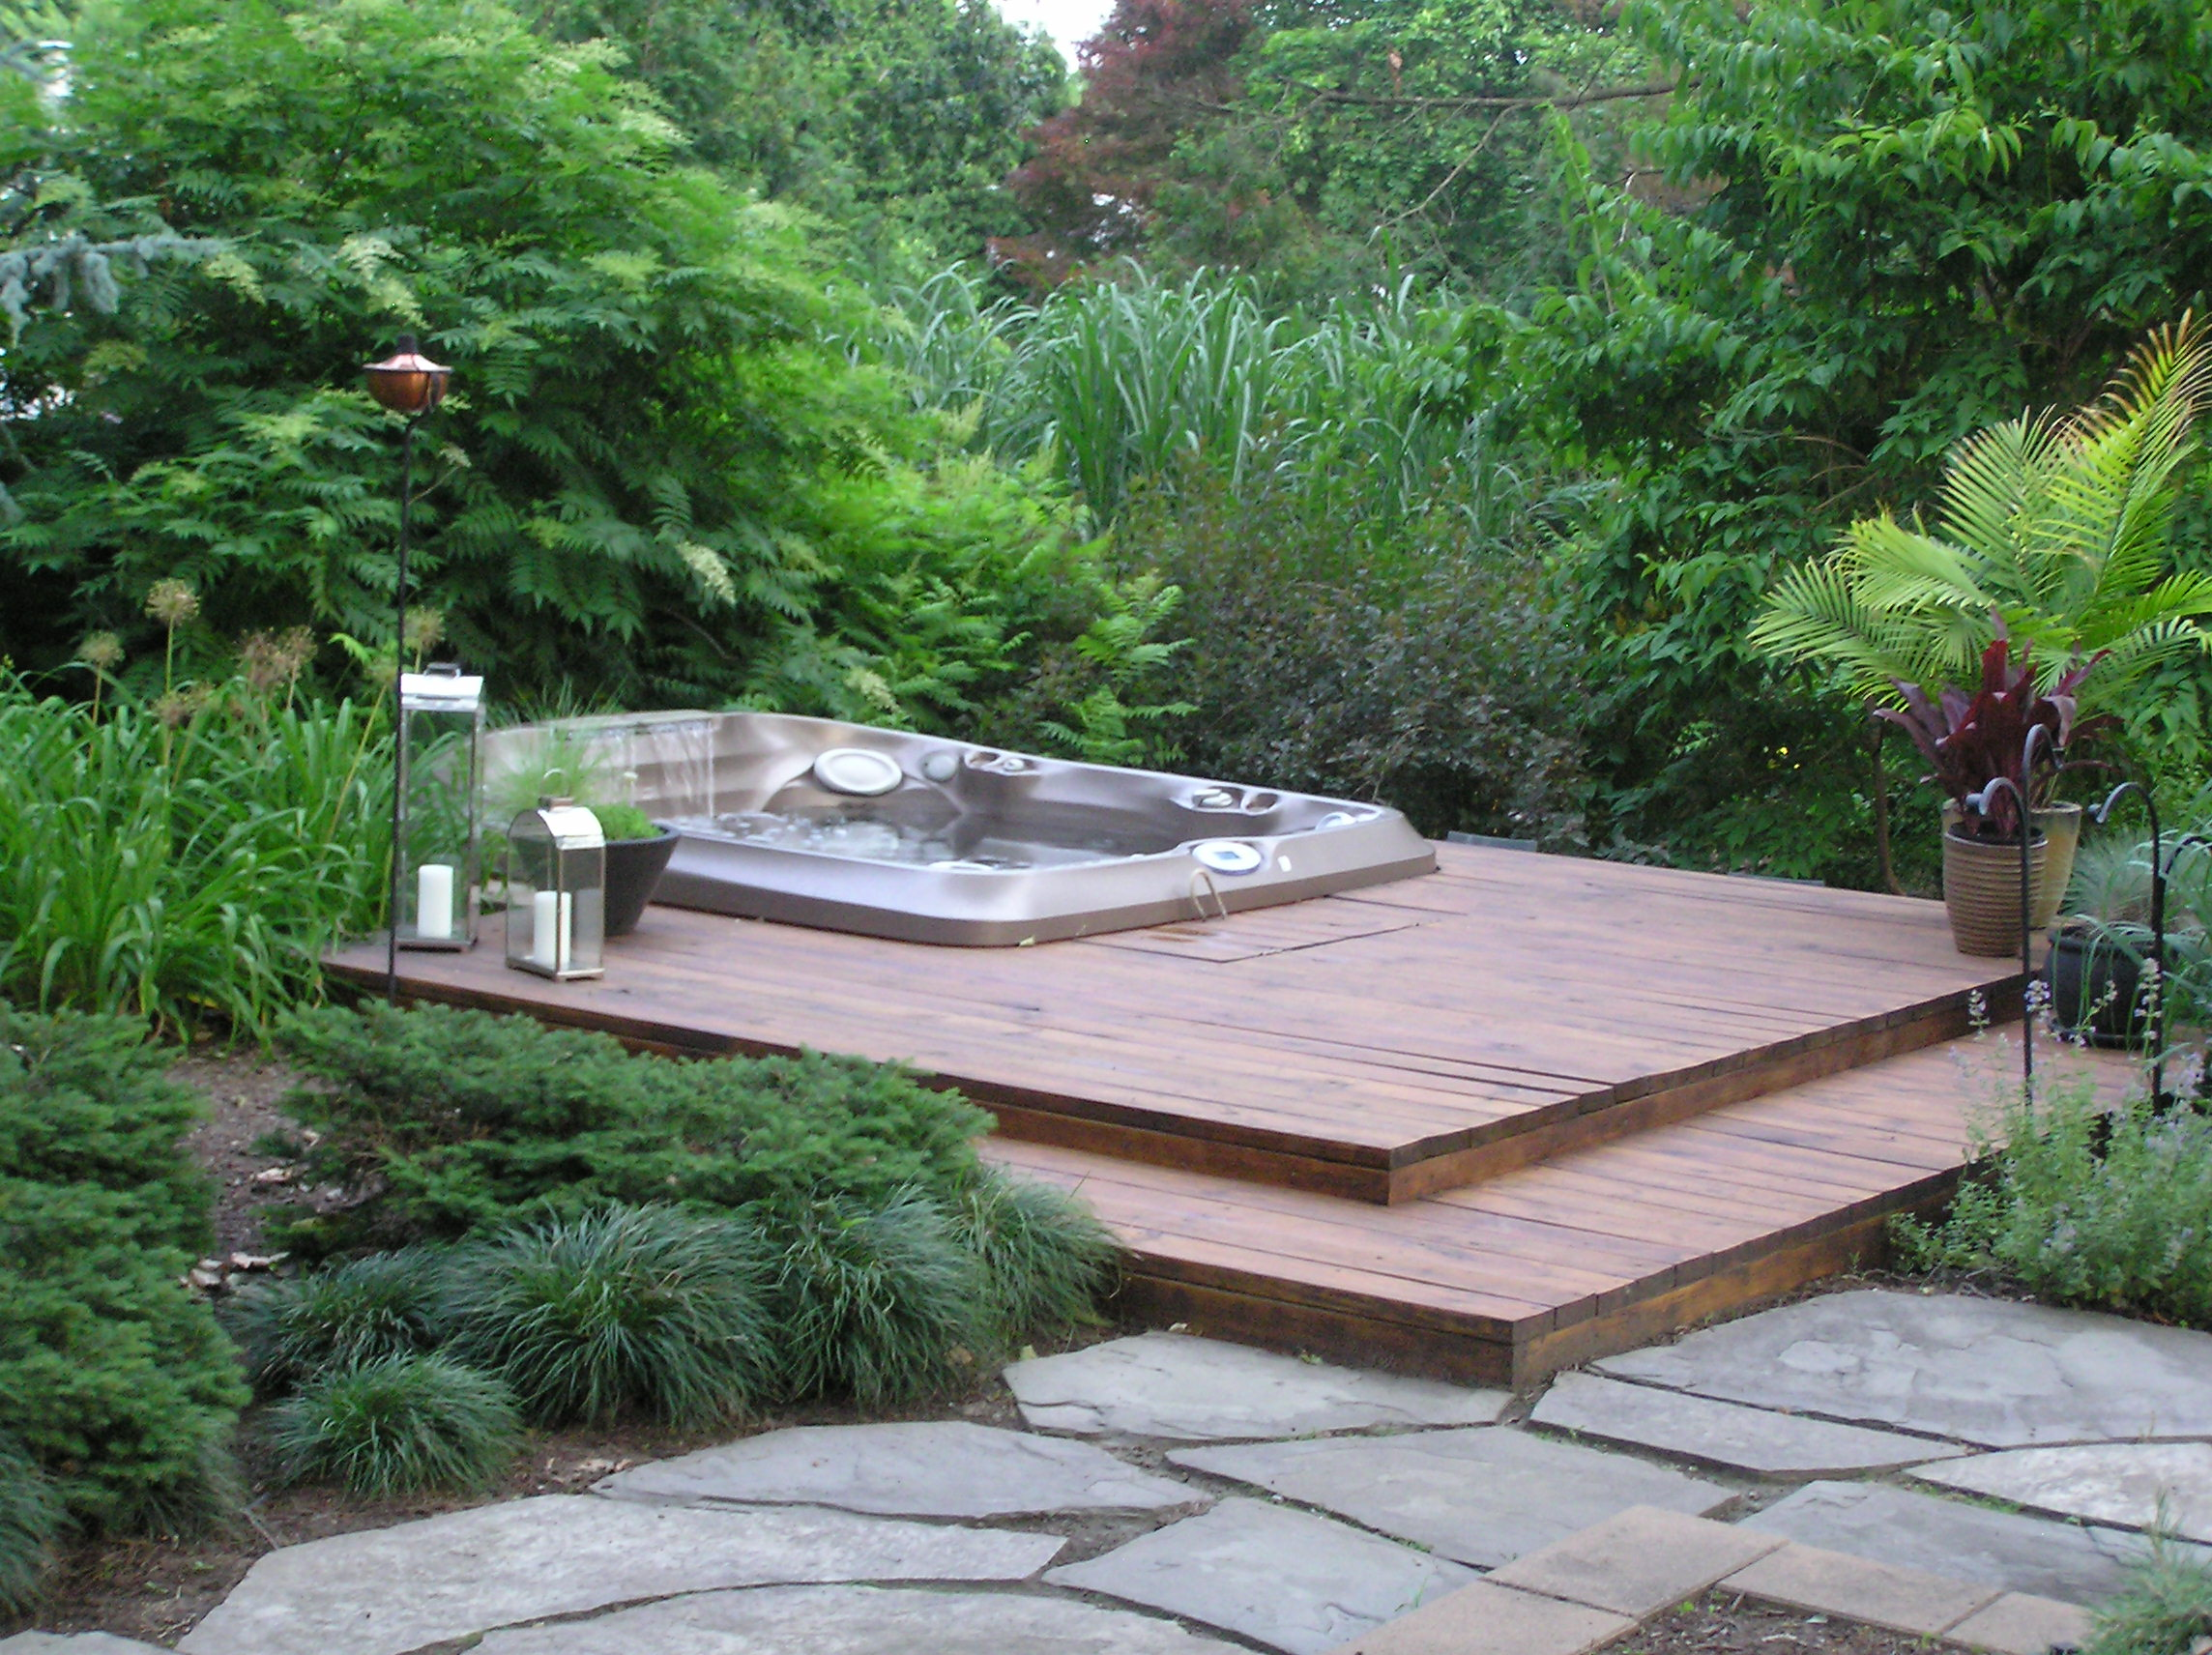 17 best images about hot tubs on pinterest hot tub deck wood decks and decks - Hot Tub Design Ideas